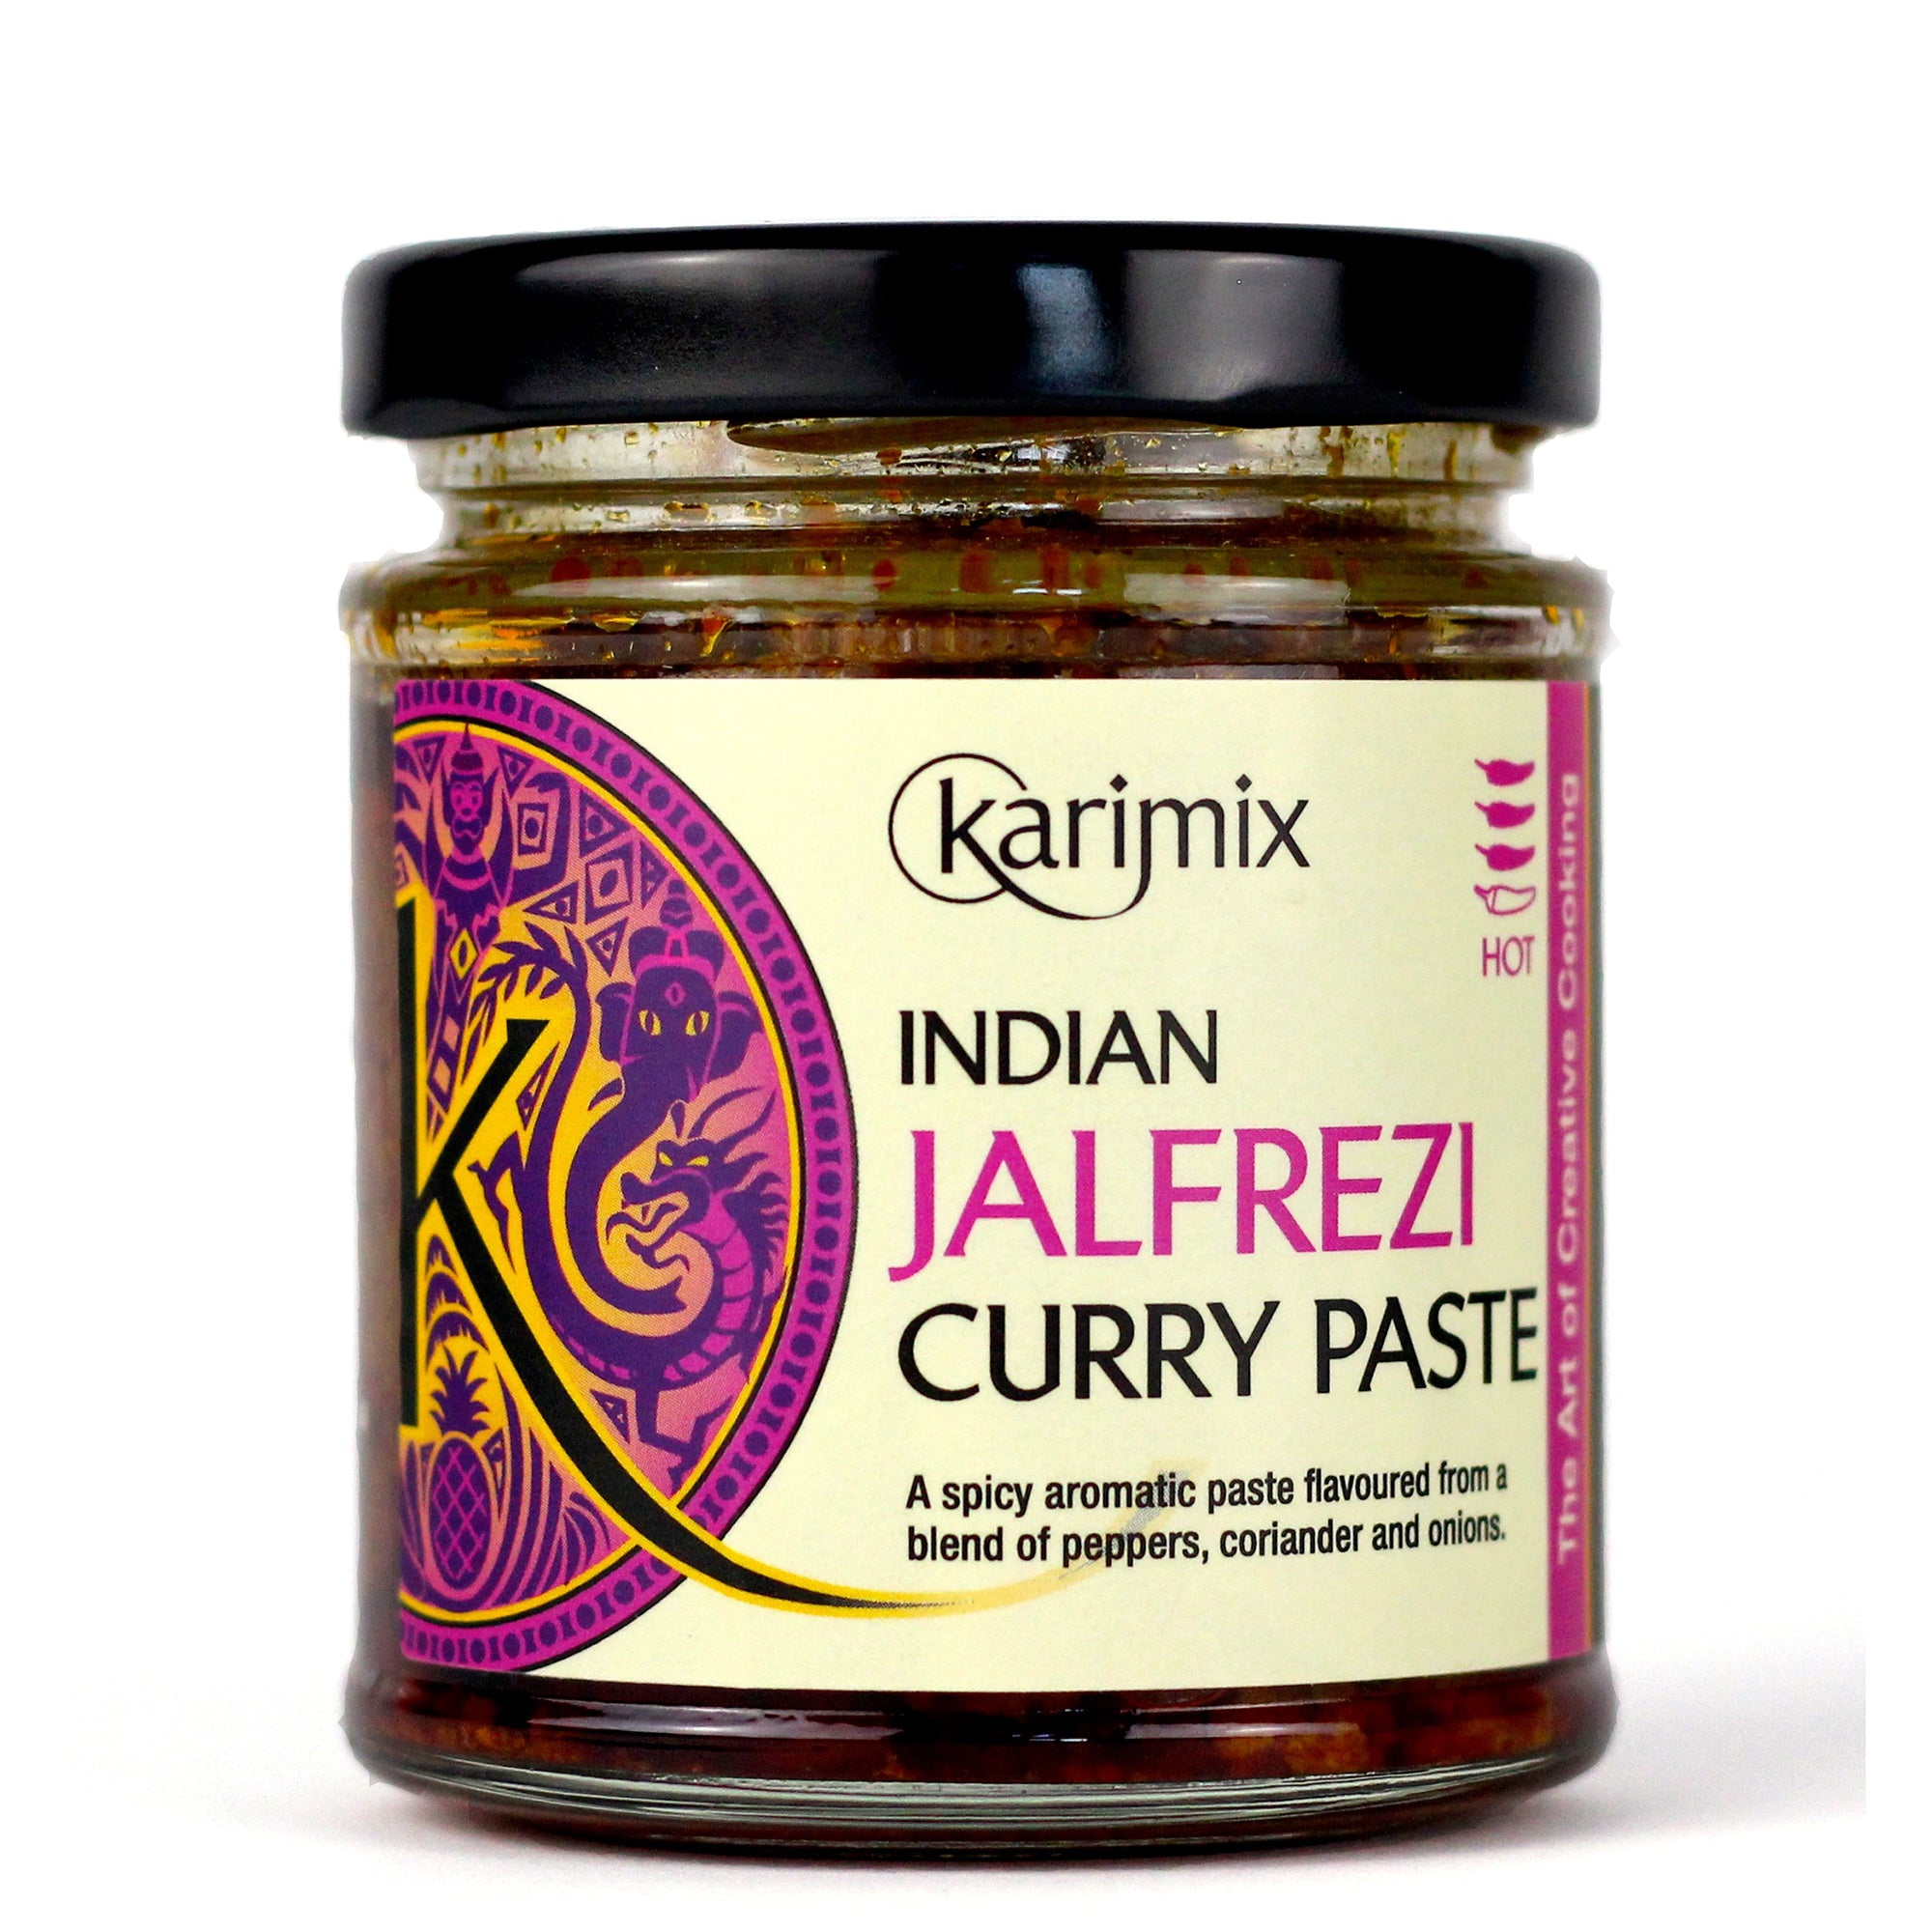 Jalfrezi Curry Paste 175g